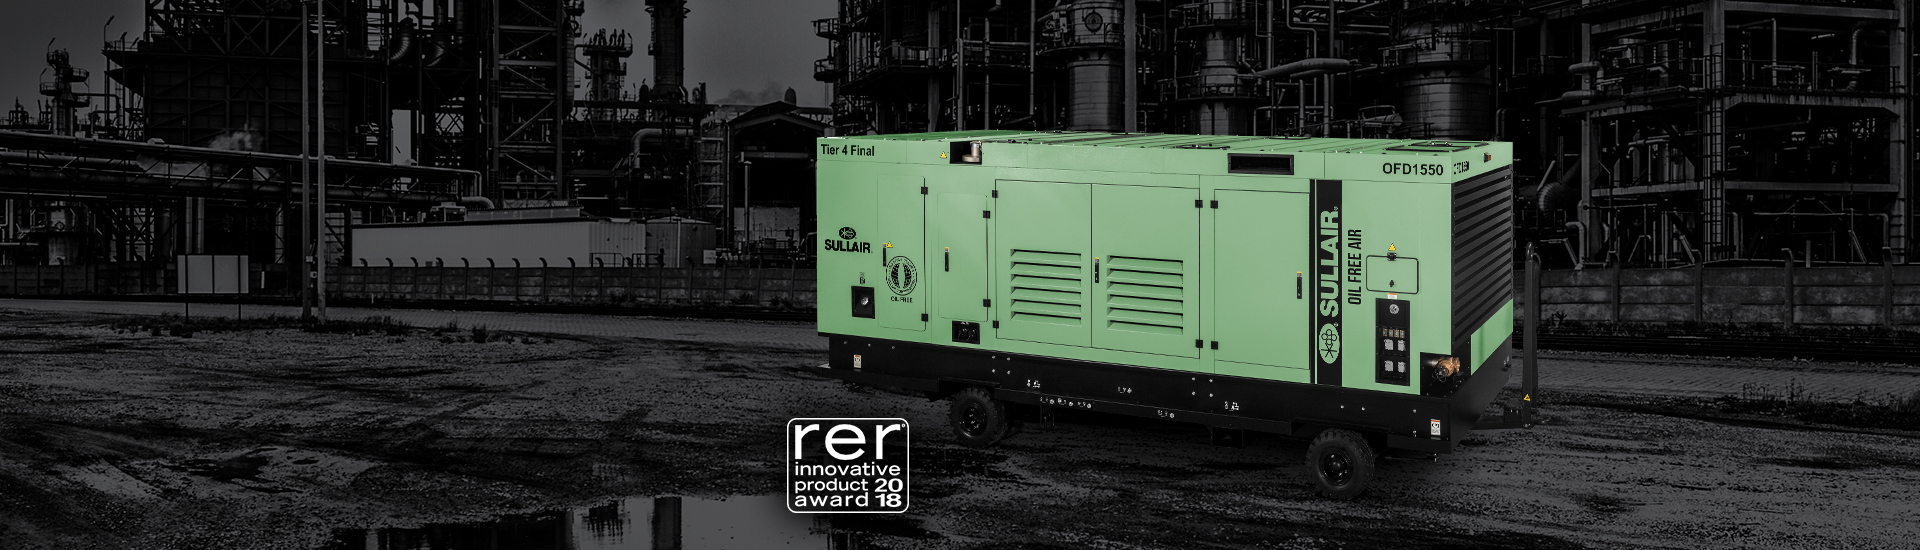 sullair ofd1550 wins rer 2018 award